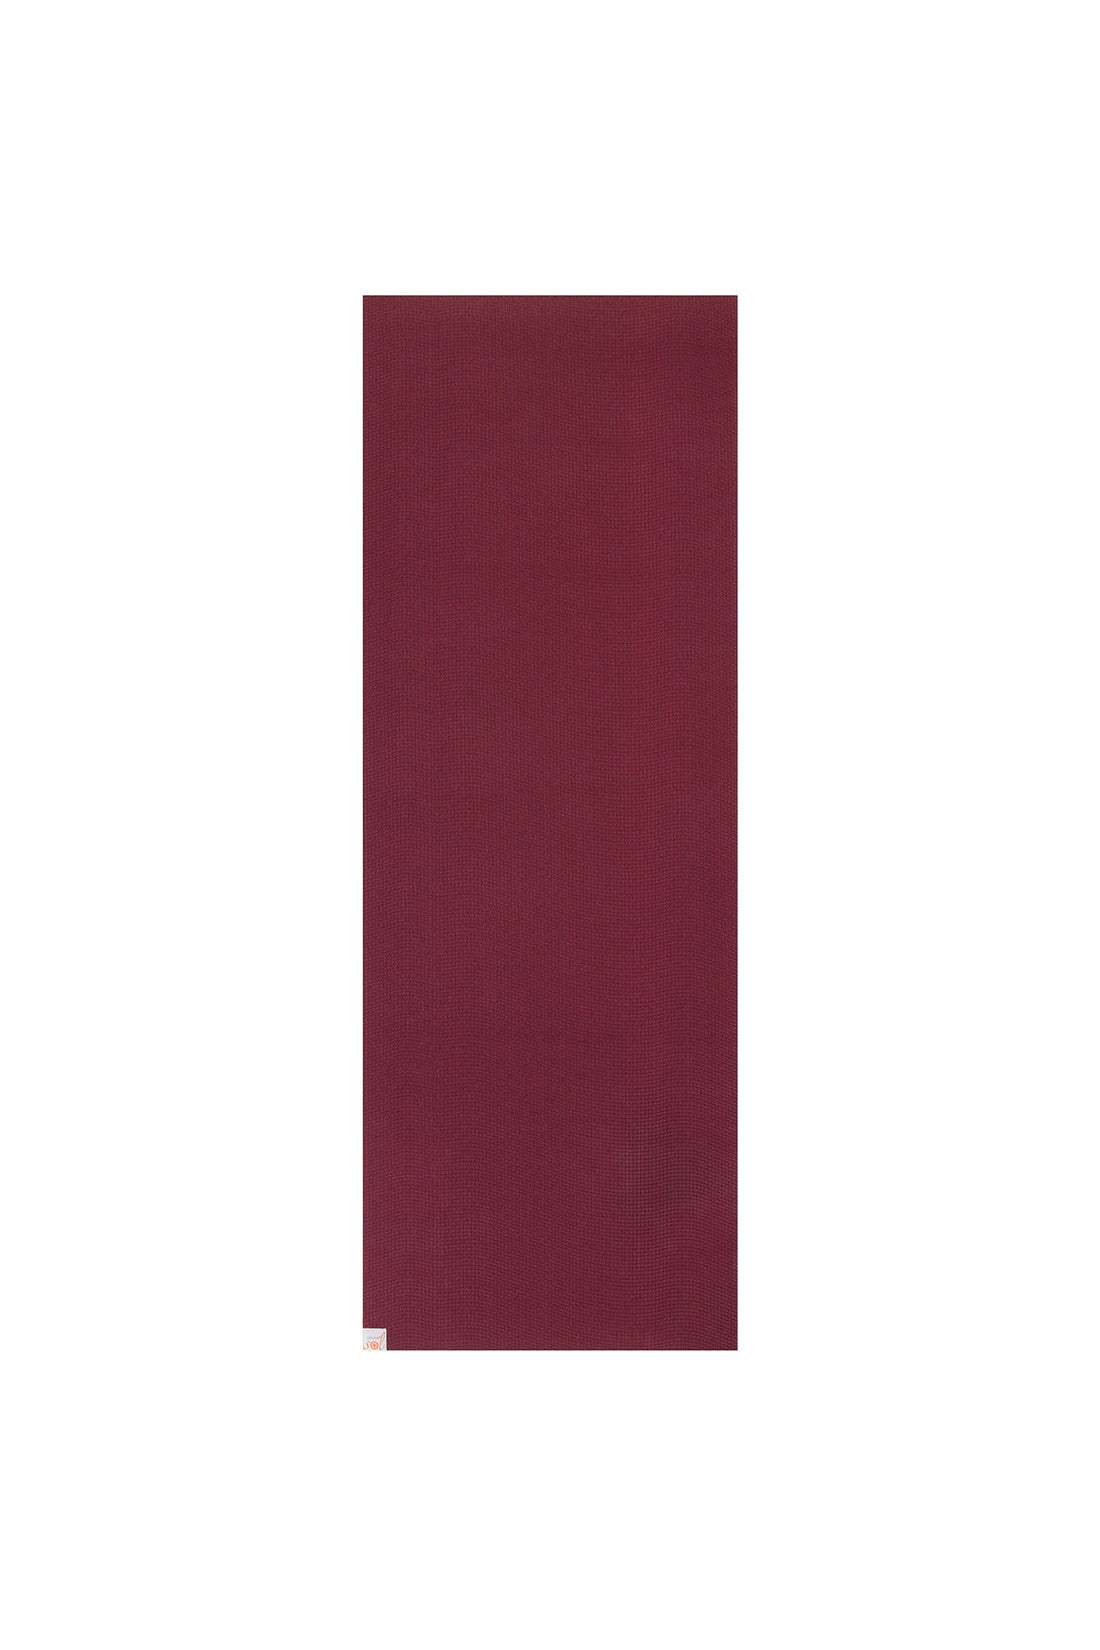 Studio Select Sure-Grip Yoga Mat - Burgundy